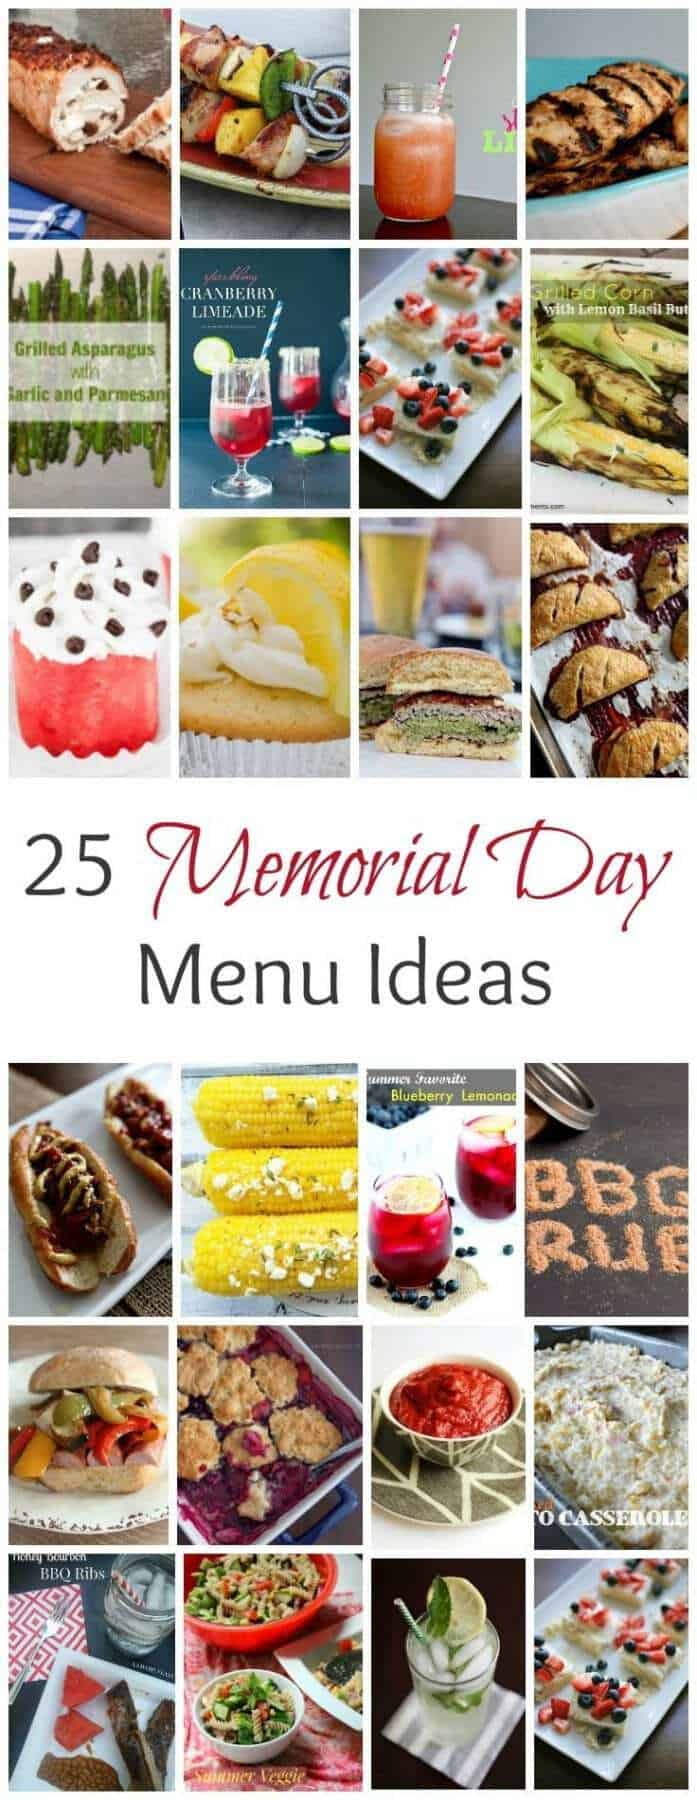 Start your season off right with these scrumptious Memorial Day Menu Ideas that will make your BBQ party fun and delicious.